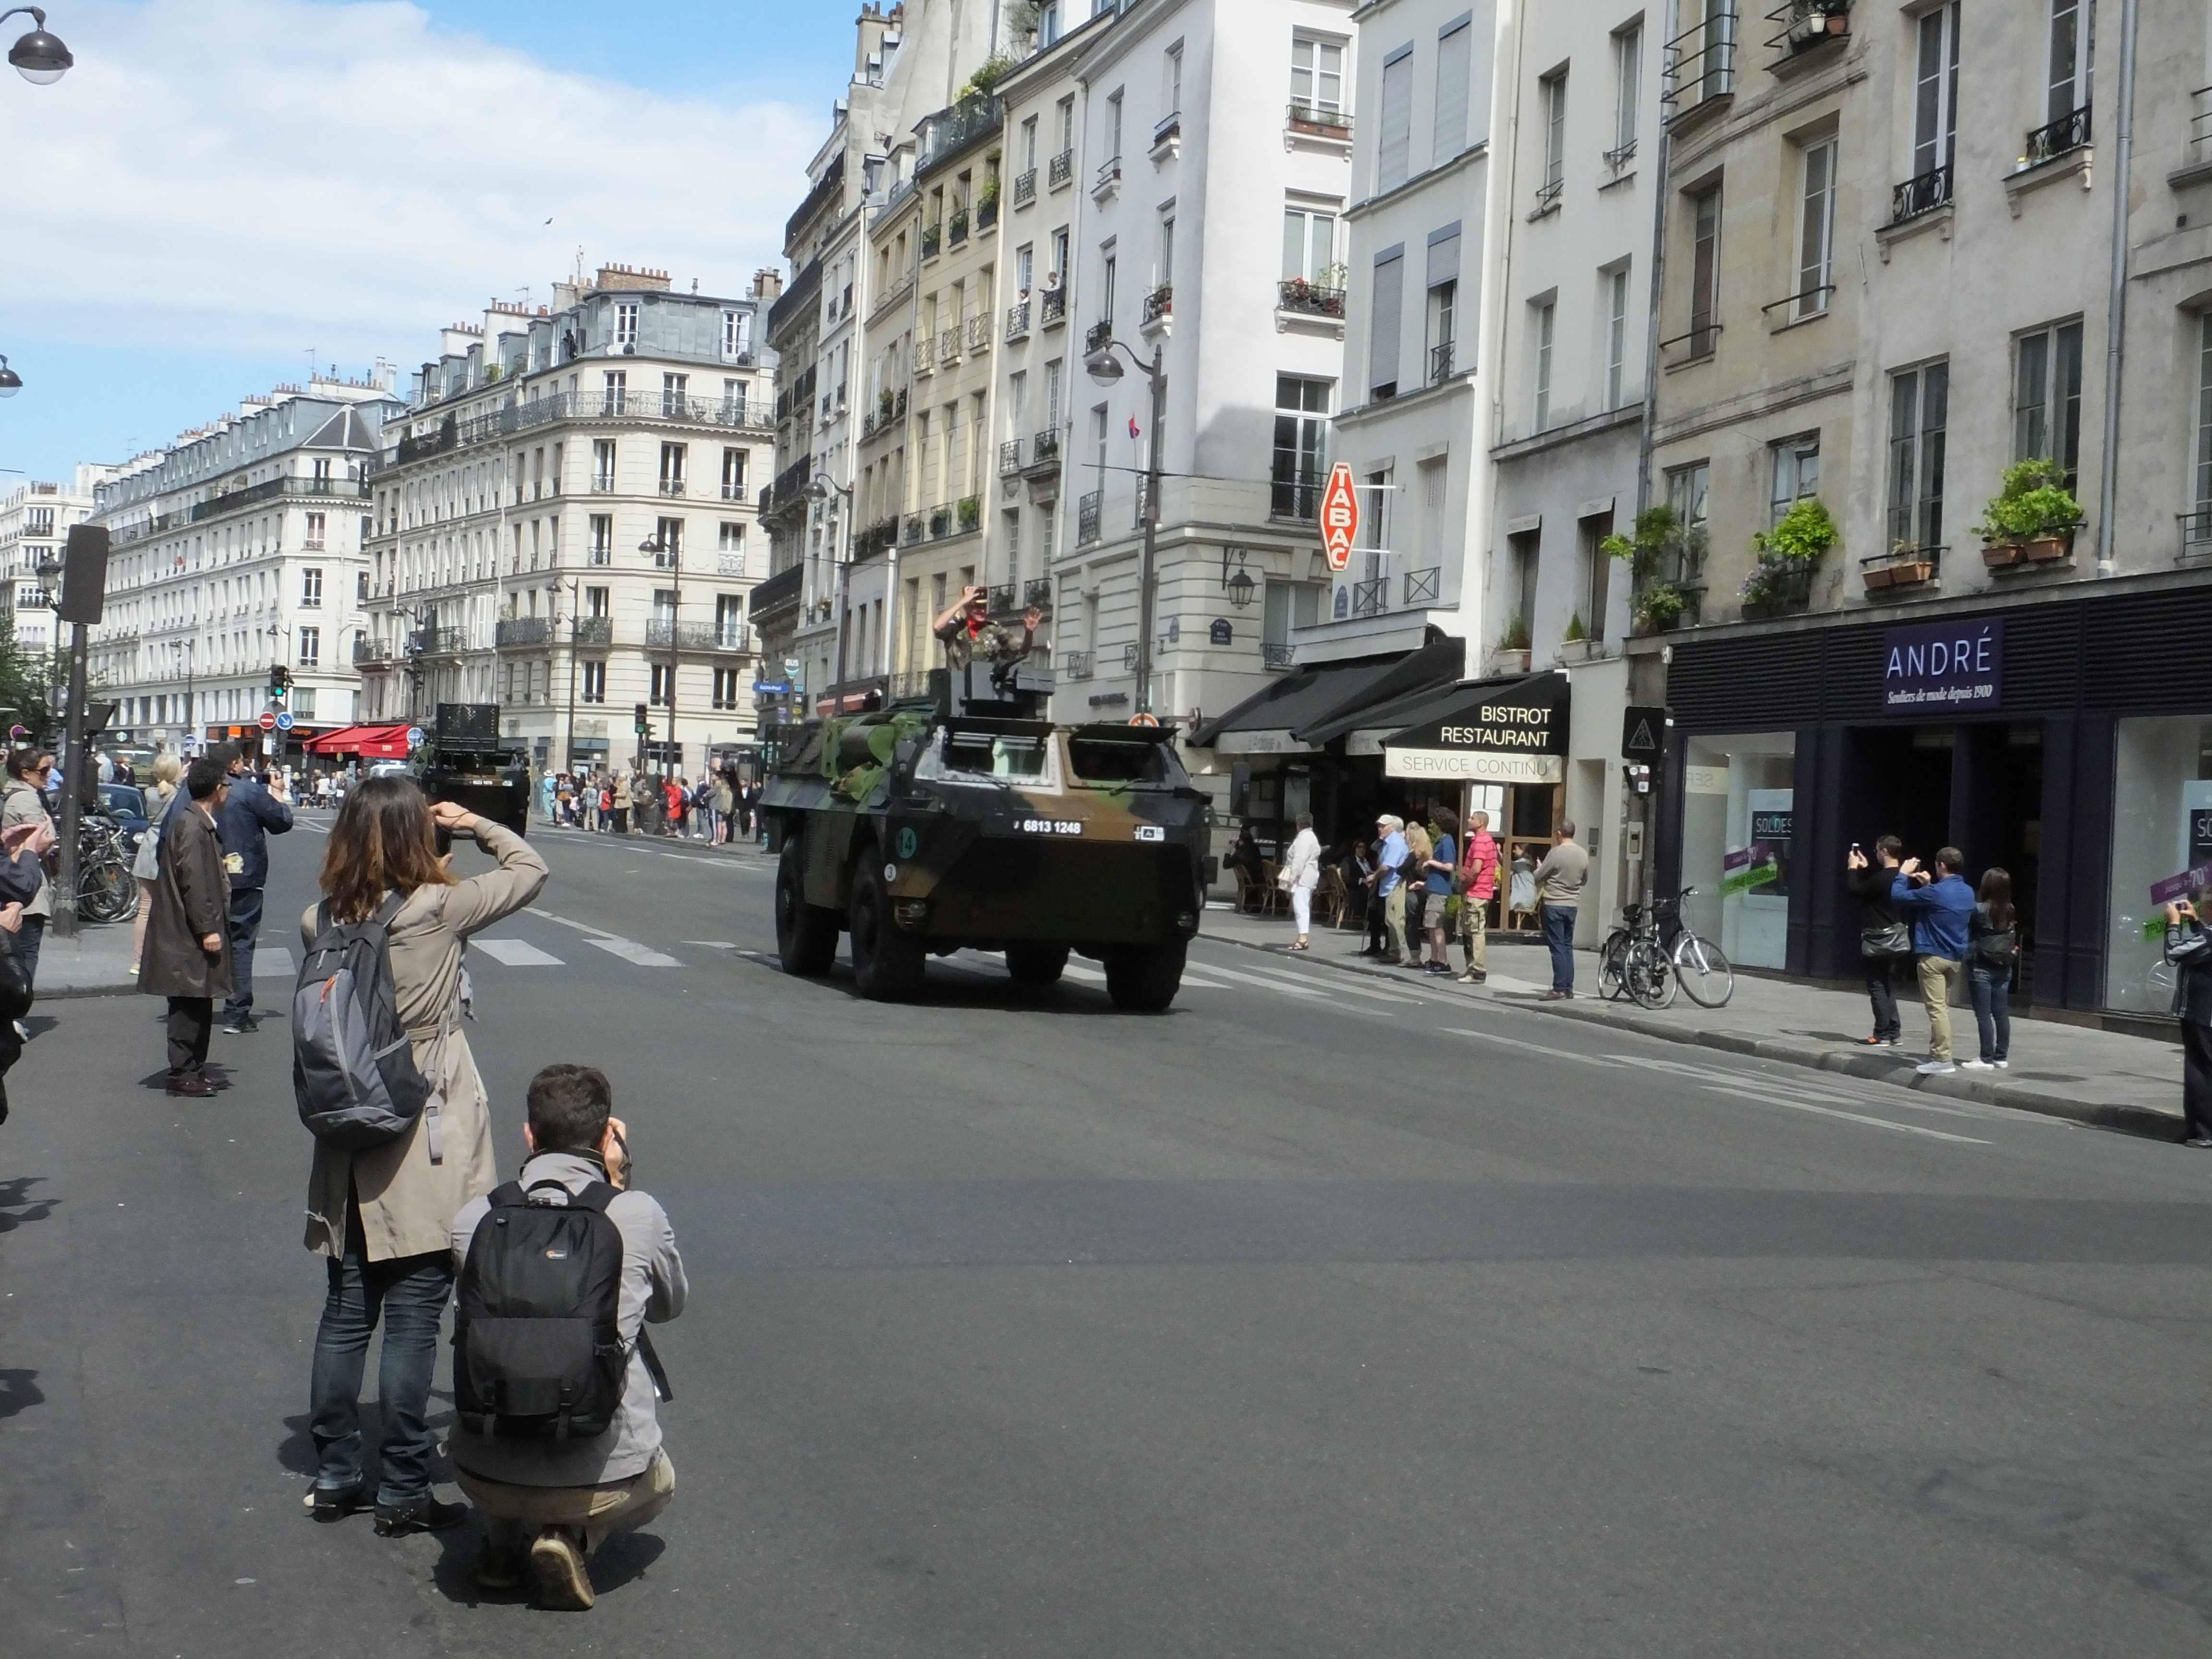 St. Antoine. Is one of the areas to watch segments of the parade as it breaks up